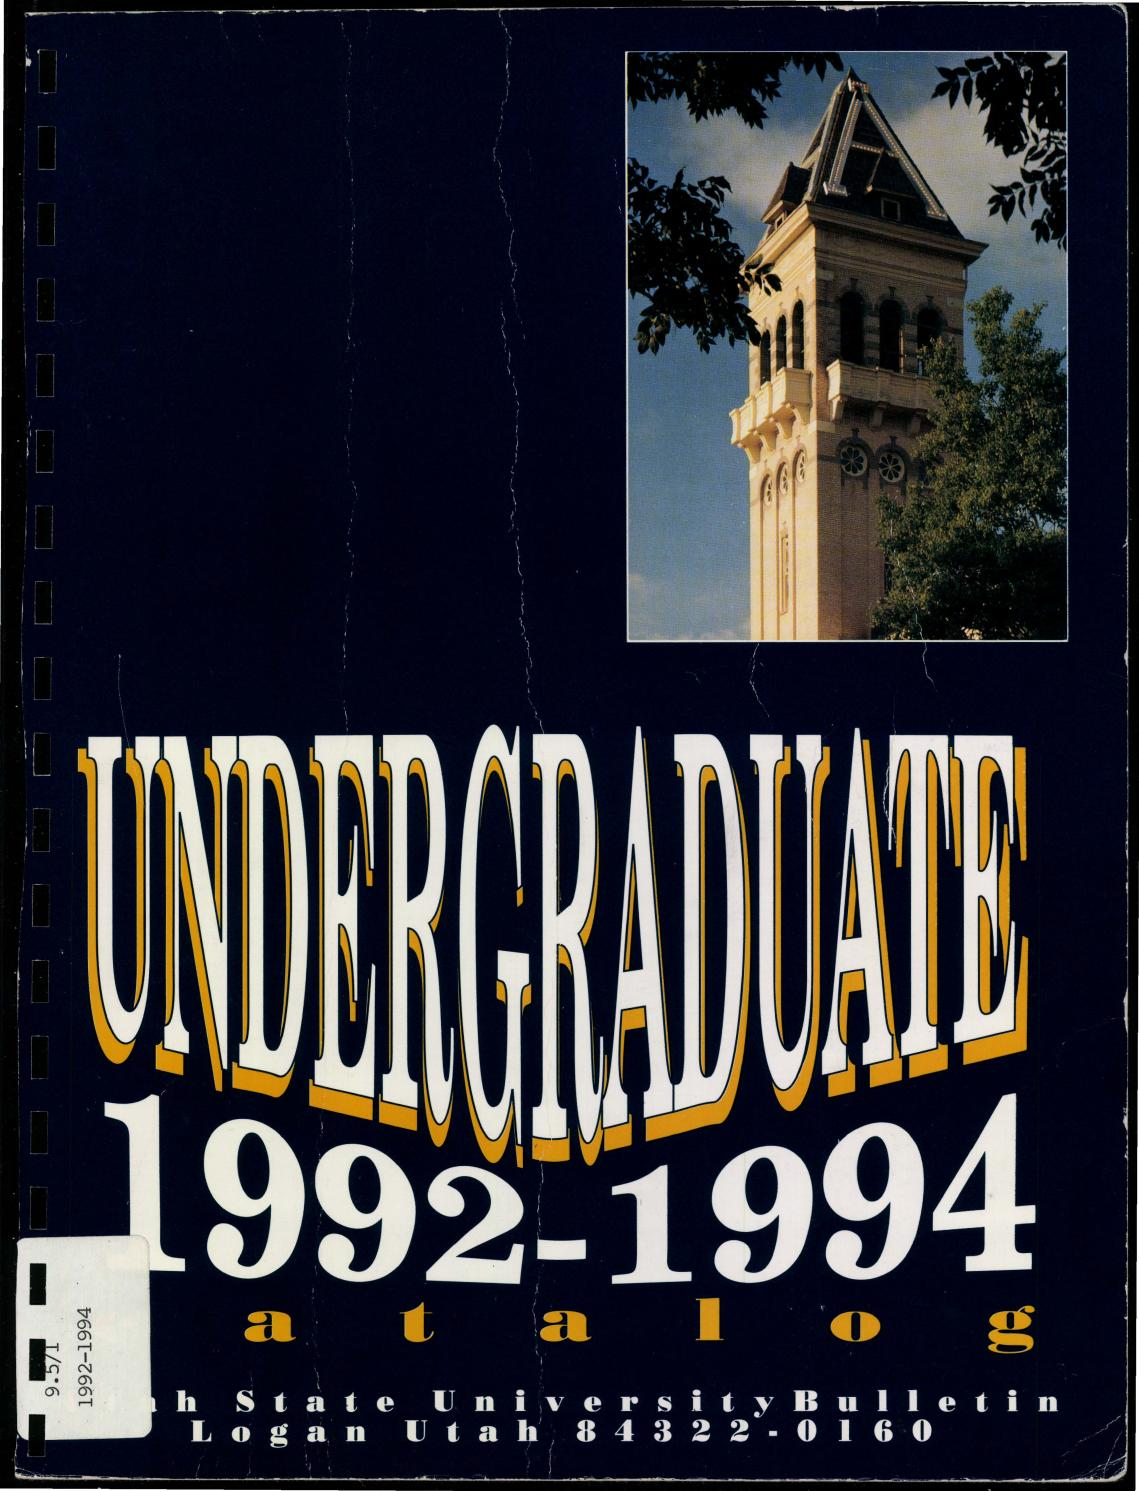 1992 94 Usu Catalog By Digital Commons Issuu Filethree Ic Circuit Chipsjpg Wikimedia